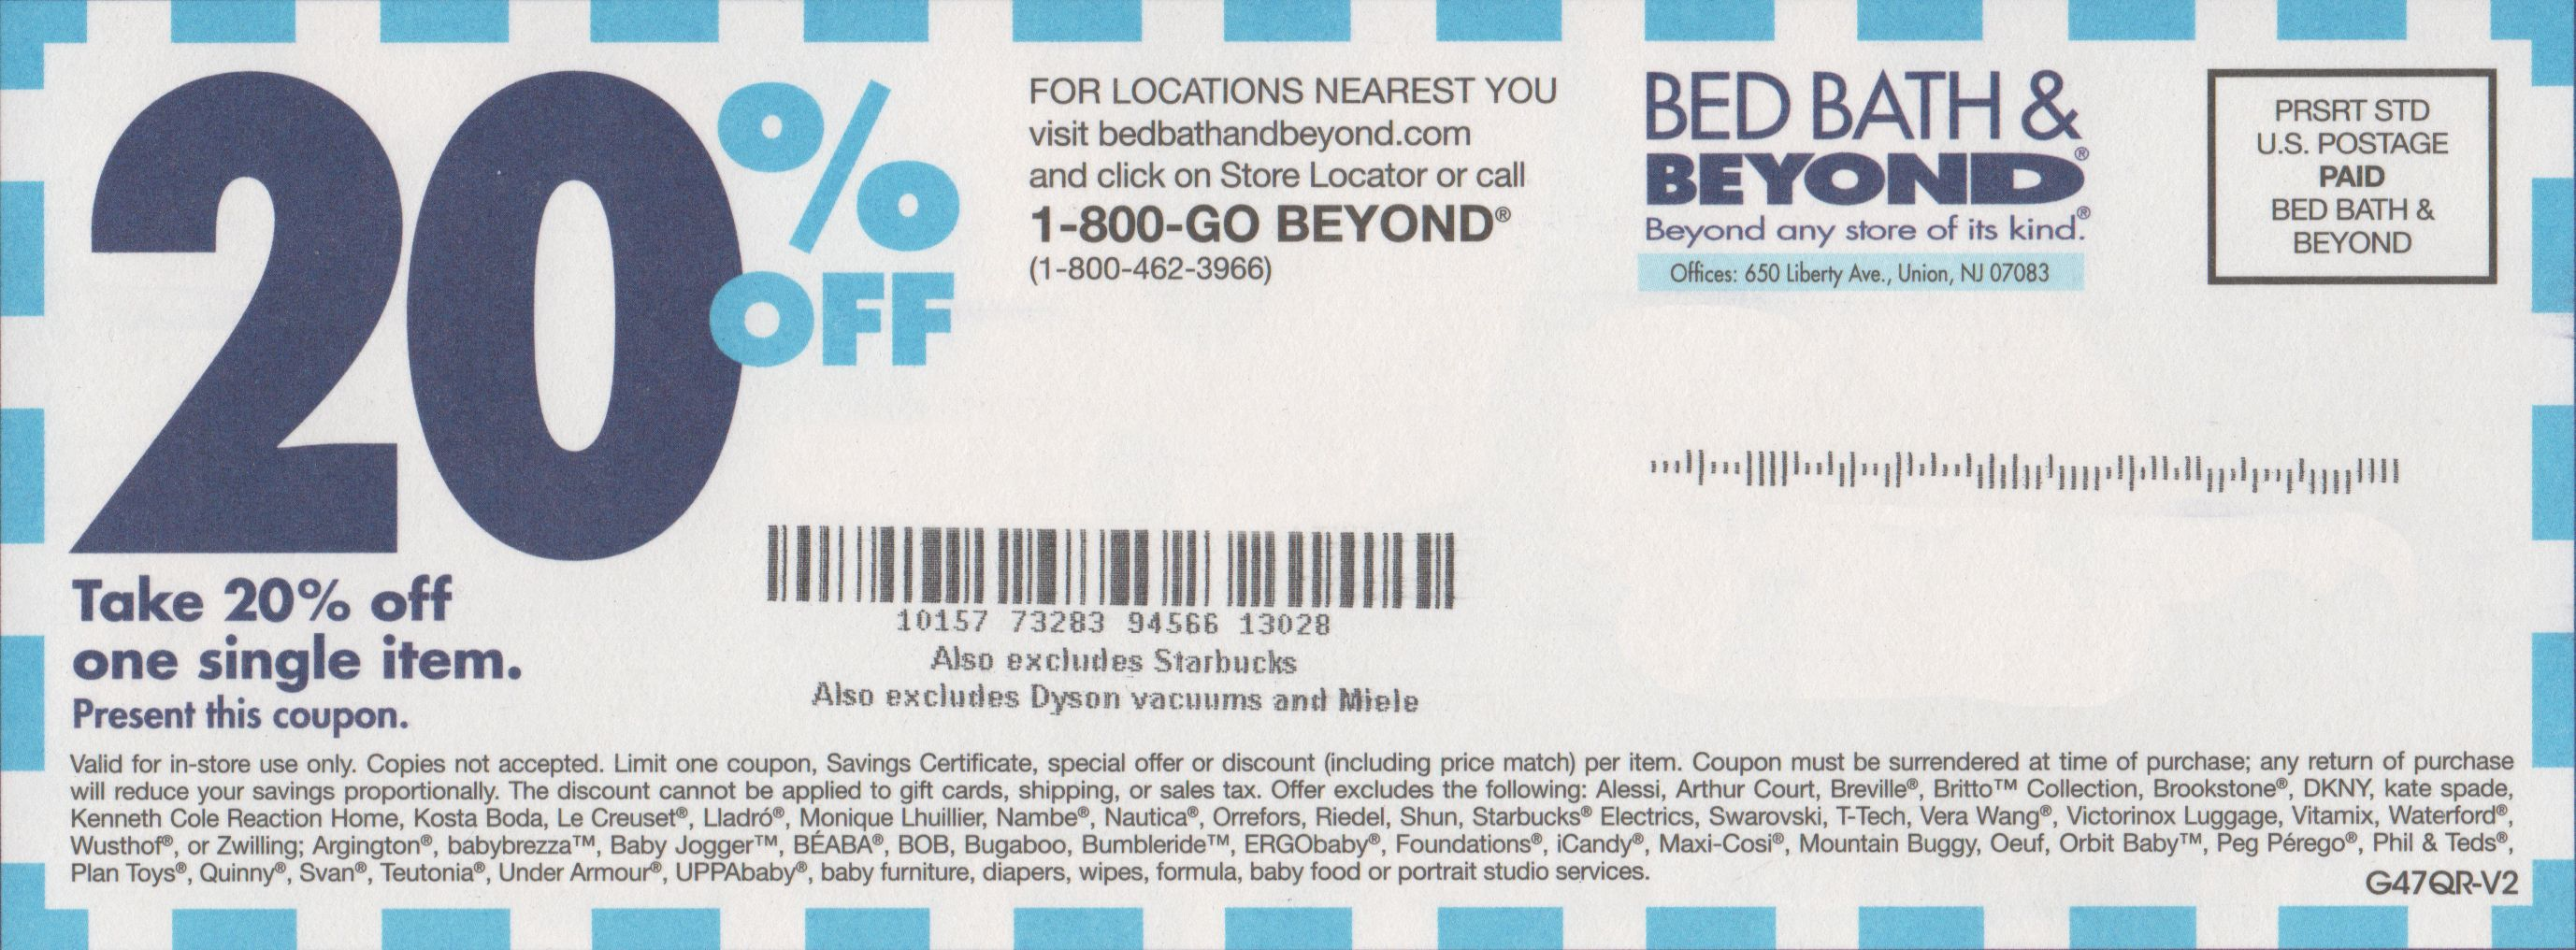 percent off bed bath and beyond coupon printable